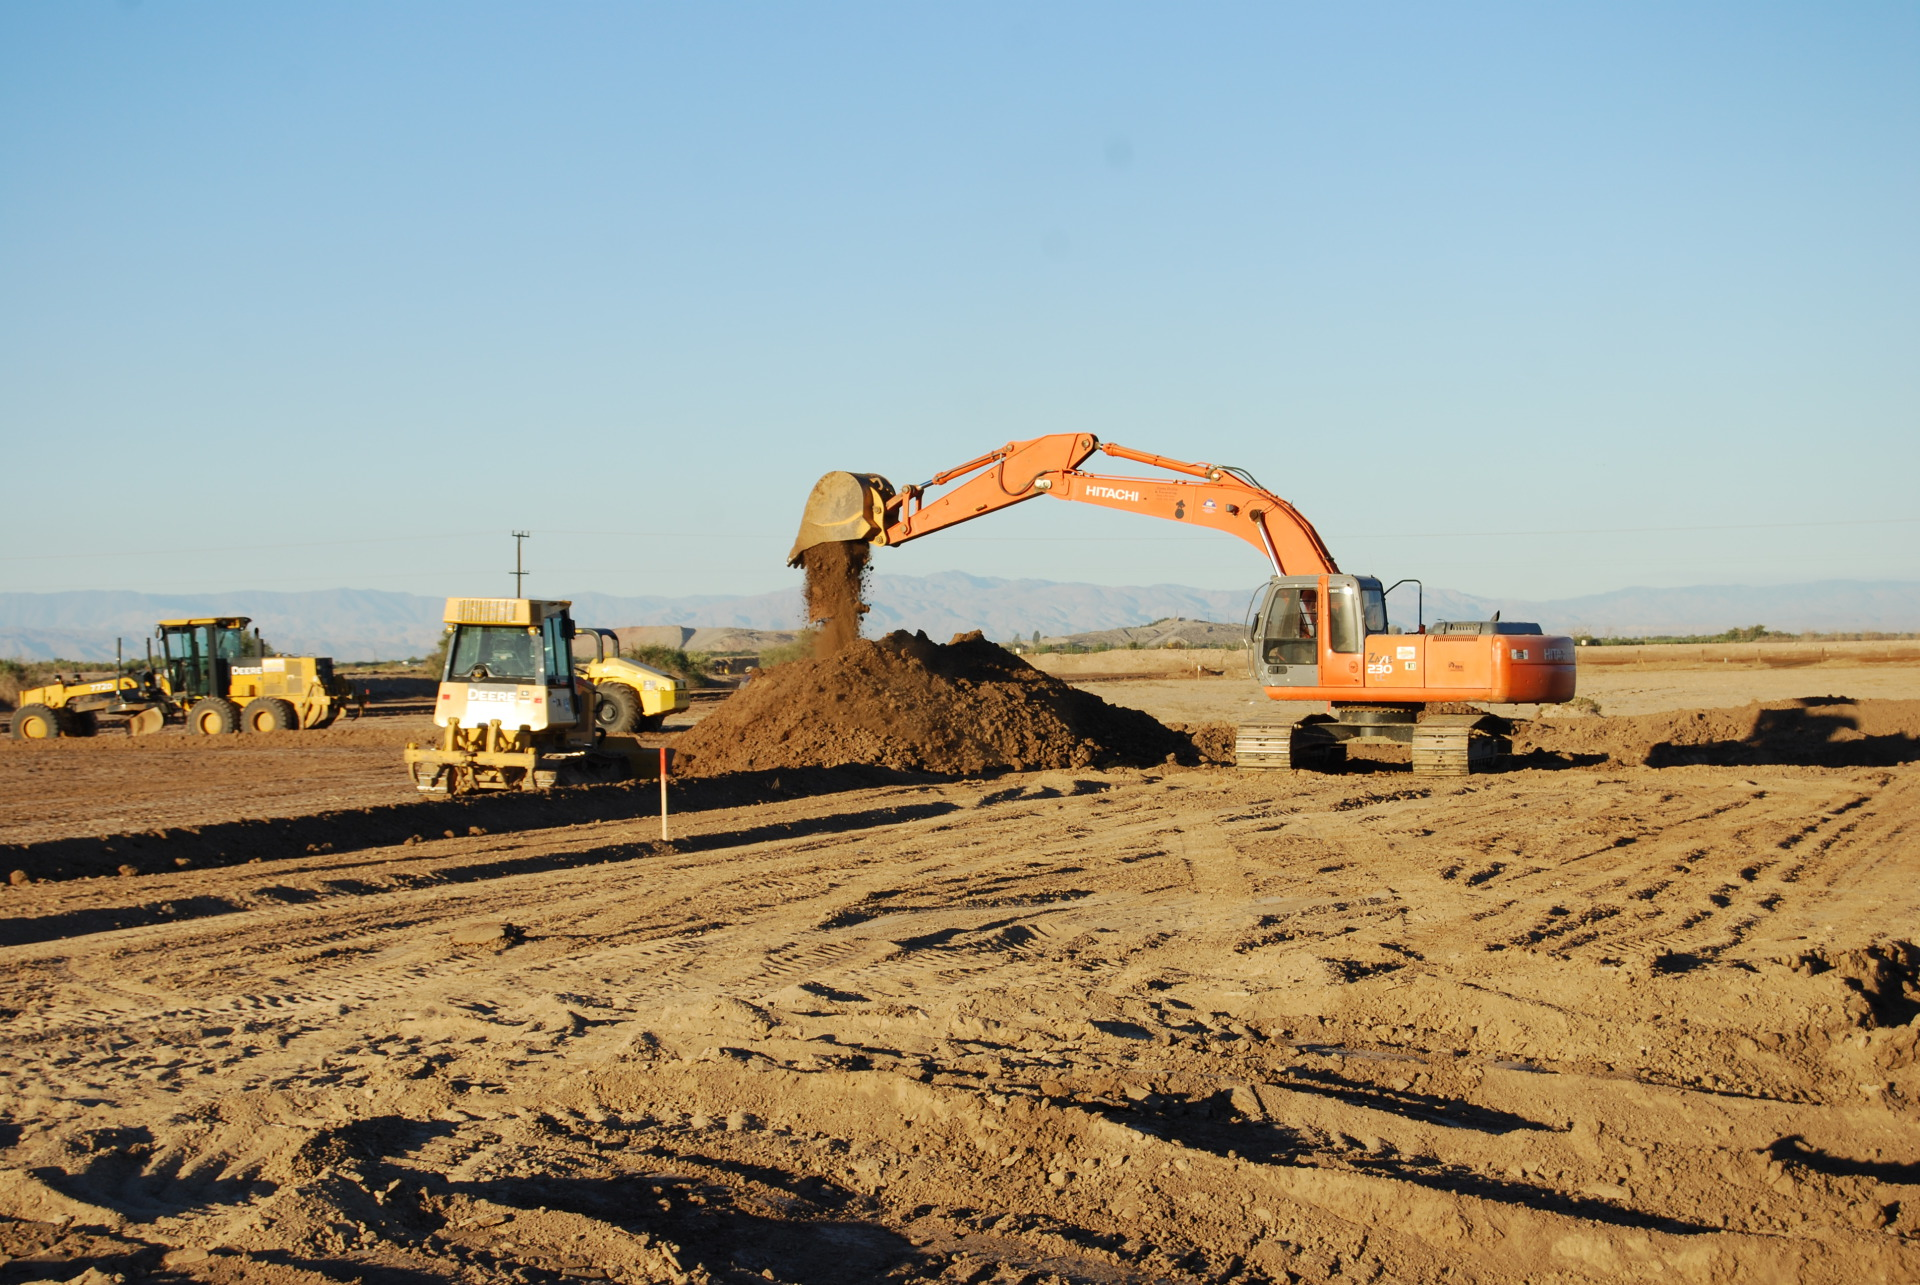 Primo Construction and Services Backhoe